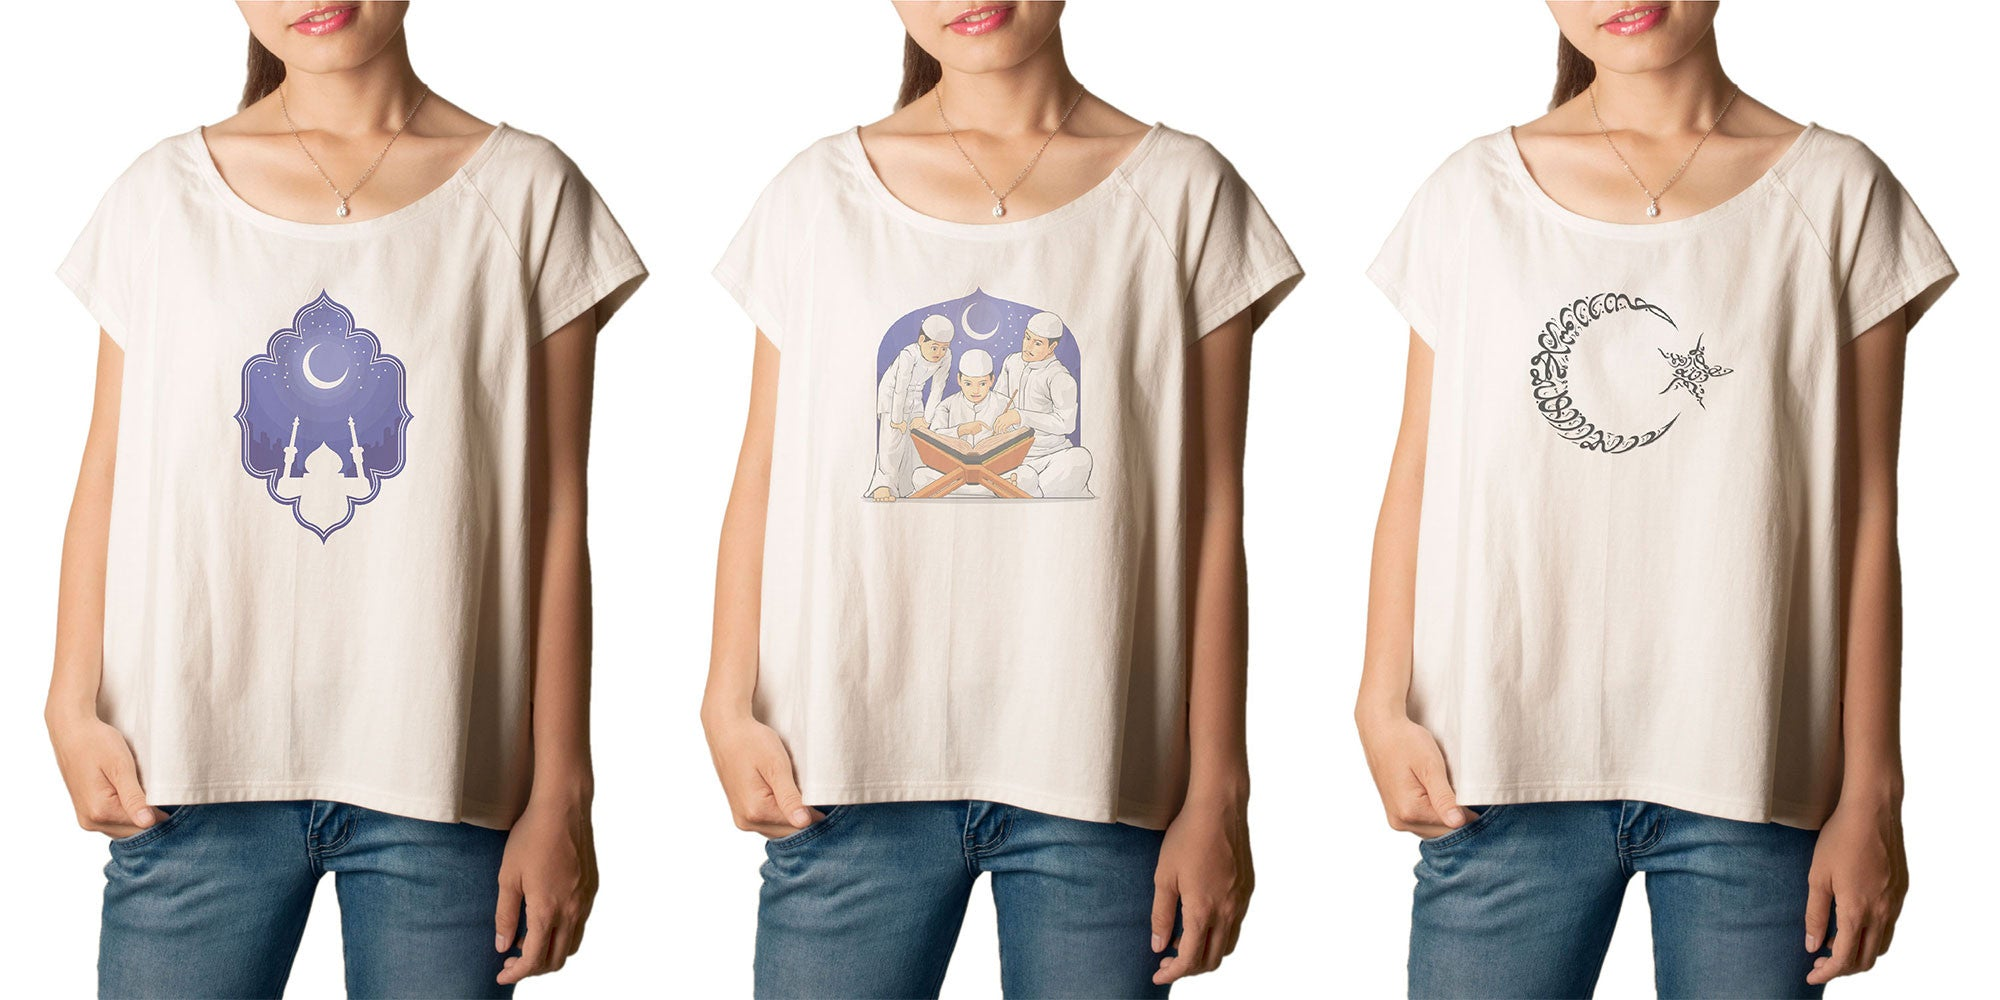 Women's Jewish Printed cotton T-shirt  Tee WTS_01